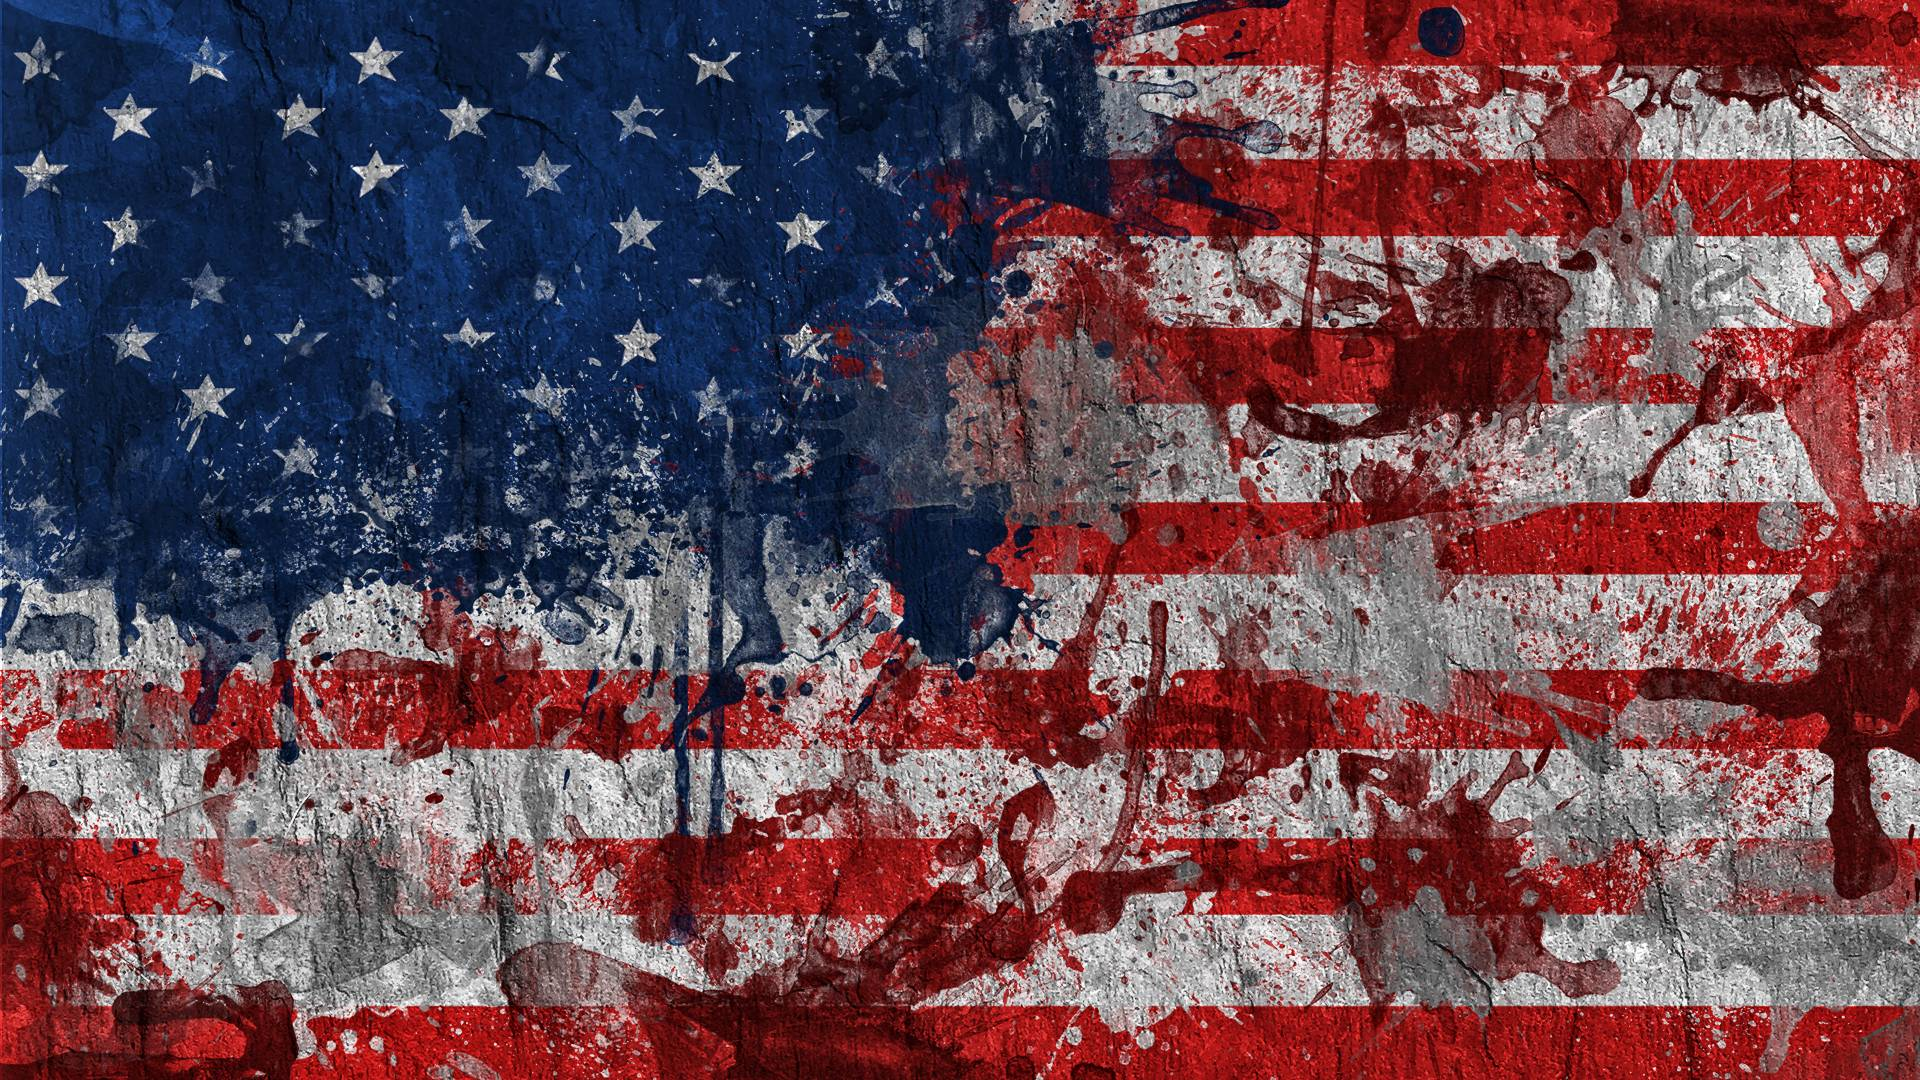 Hd wallpaper usa flag - Dirty Painting American Flag Exclusive Hd Wallpapers 5329